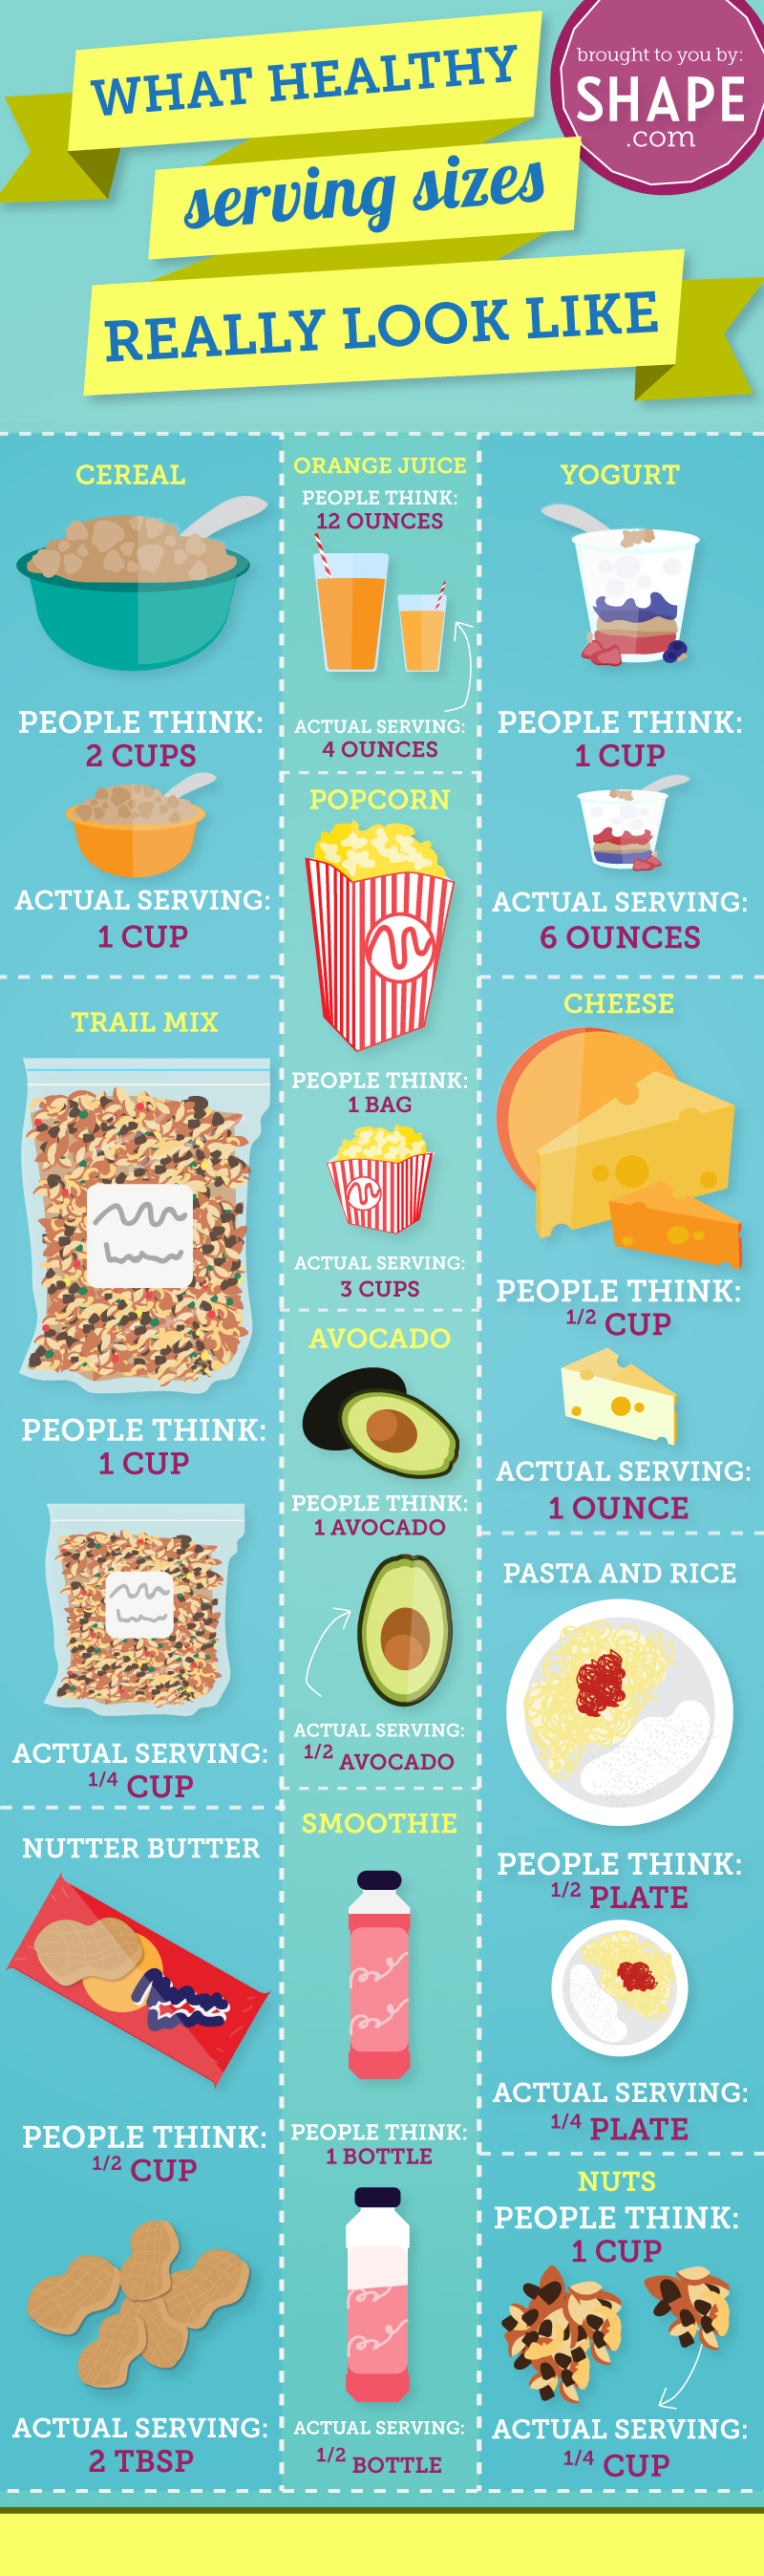 Healthy Serving Sizes: How Much Is Enough? Infographic